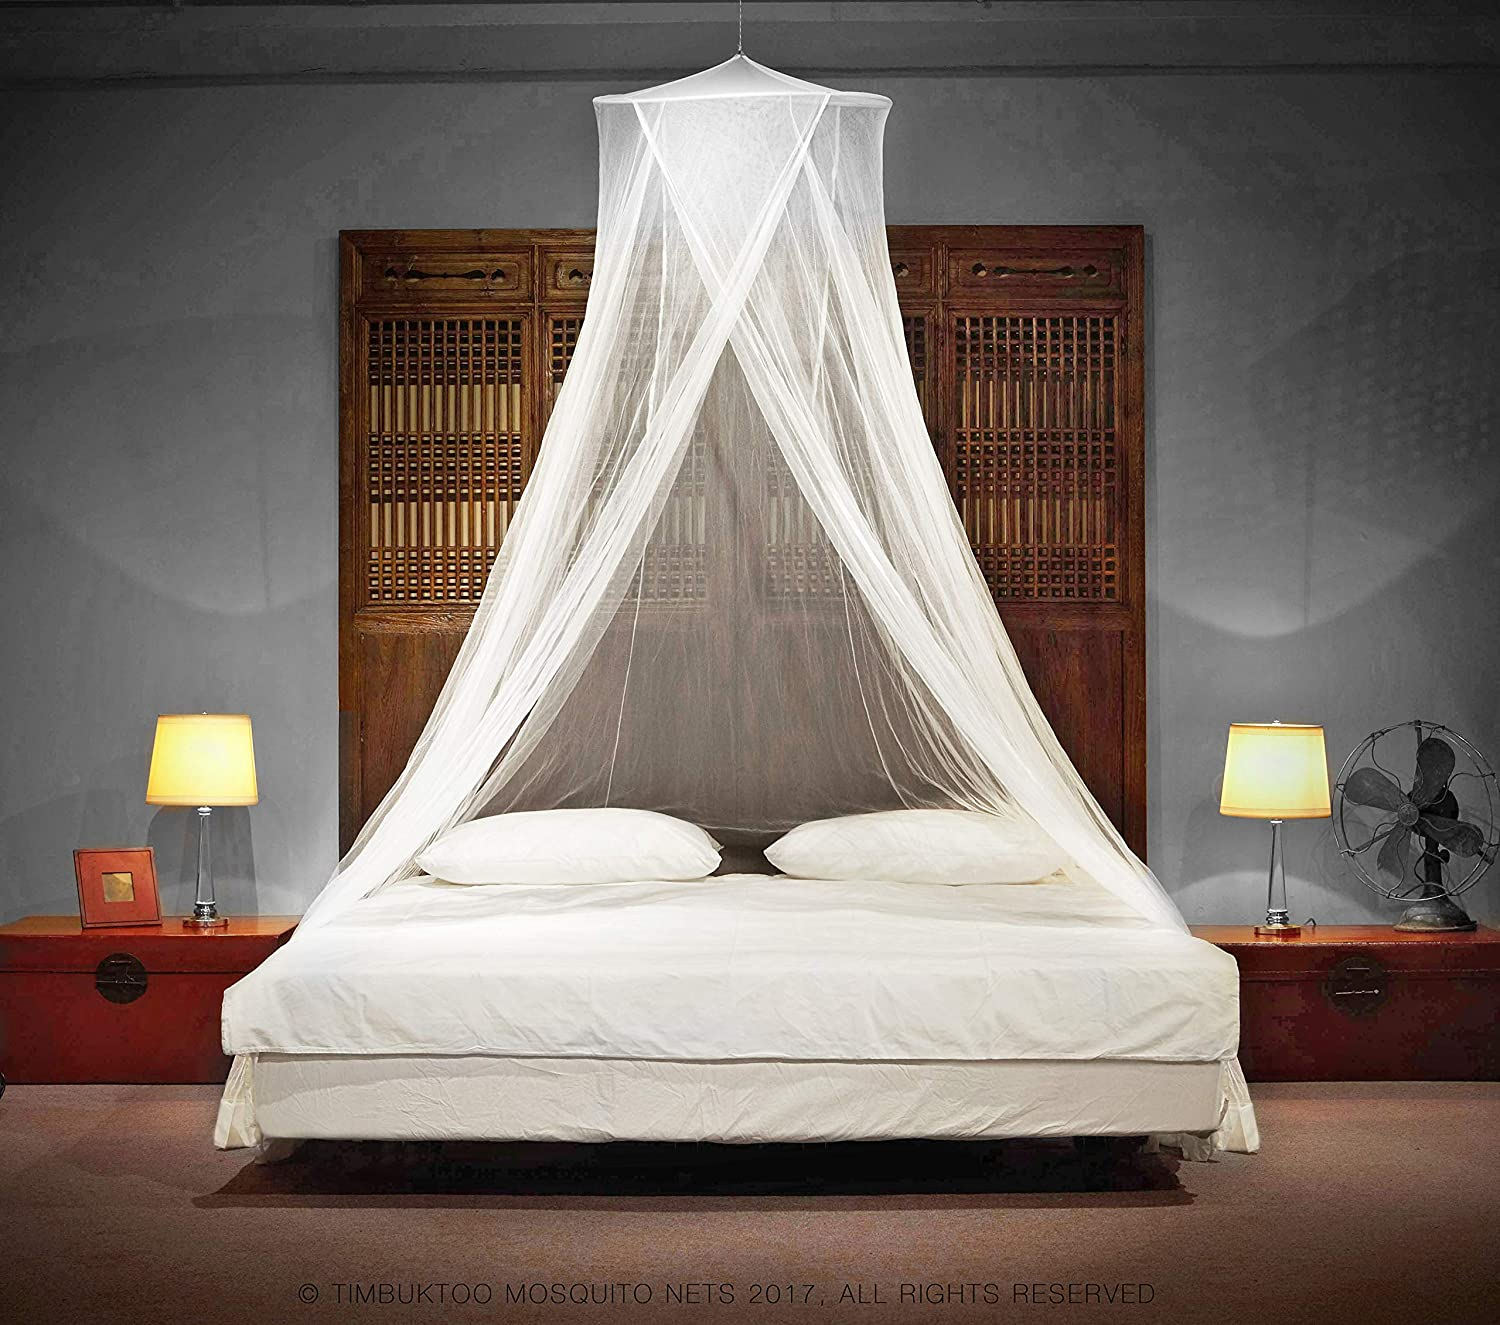 low priced 50db4 b199f TIMBUKTOO MOSQUITO NETS Luxury Mosquito NET - for Single to King Size Beds  Quick and Easy Installation System - Unique Internal Loop - 2 Entries - ...